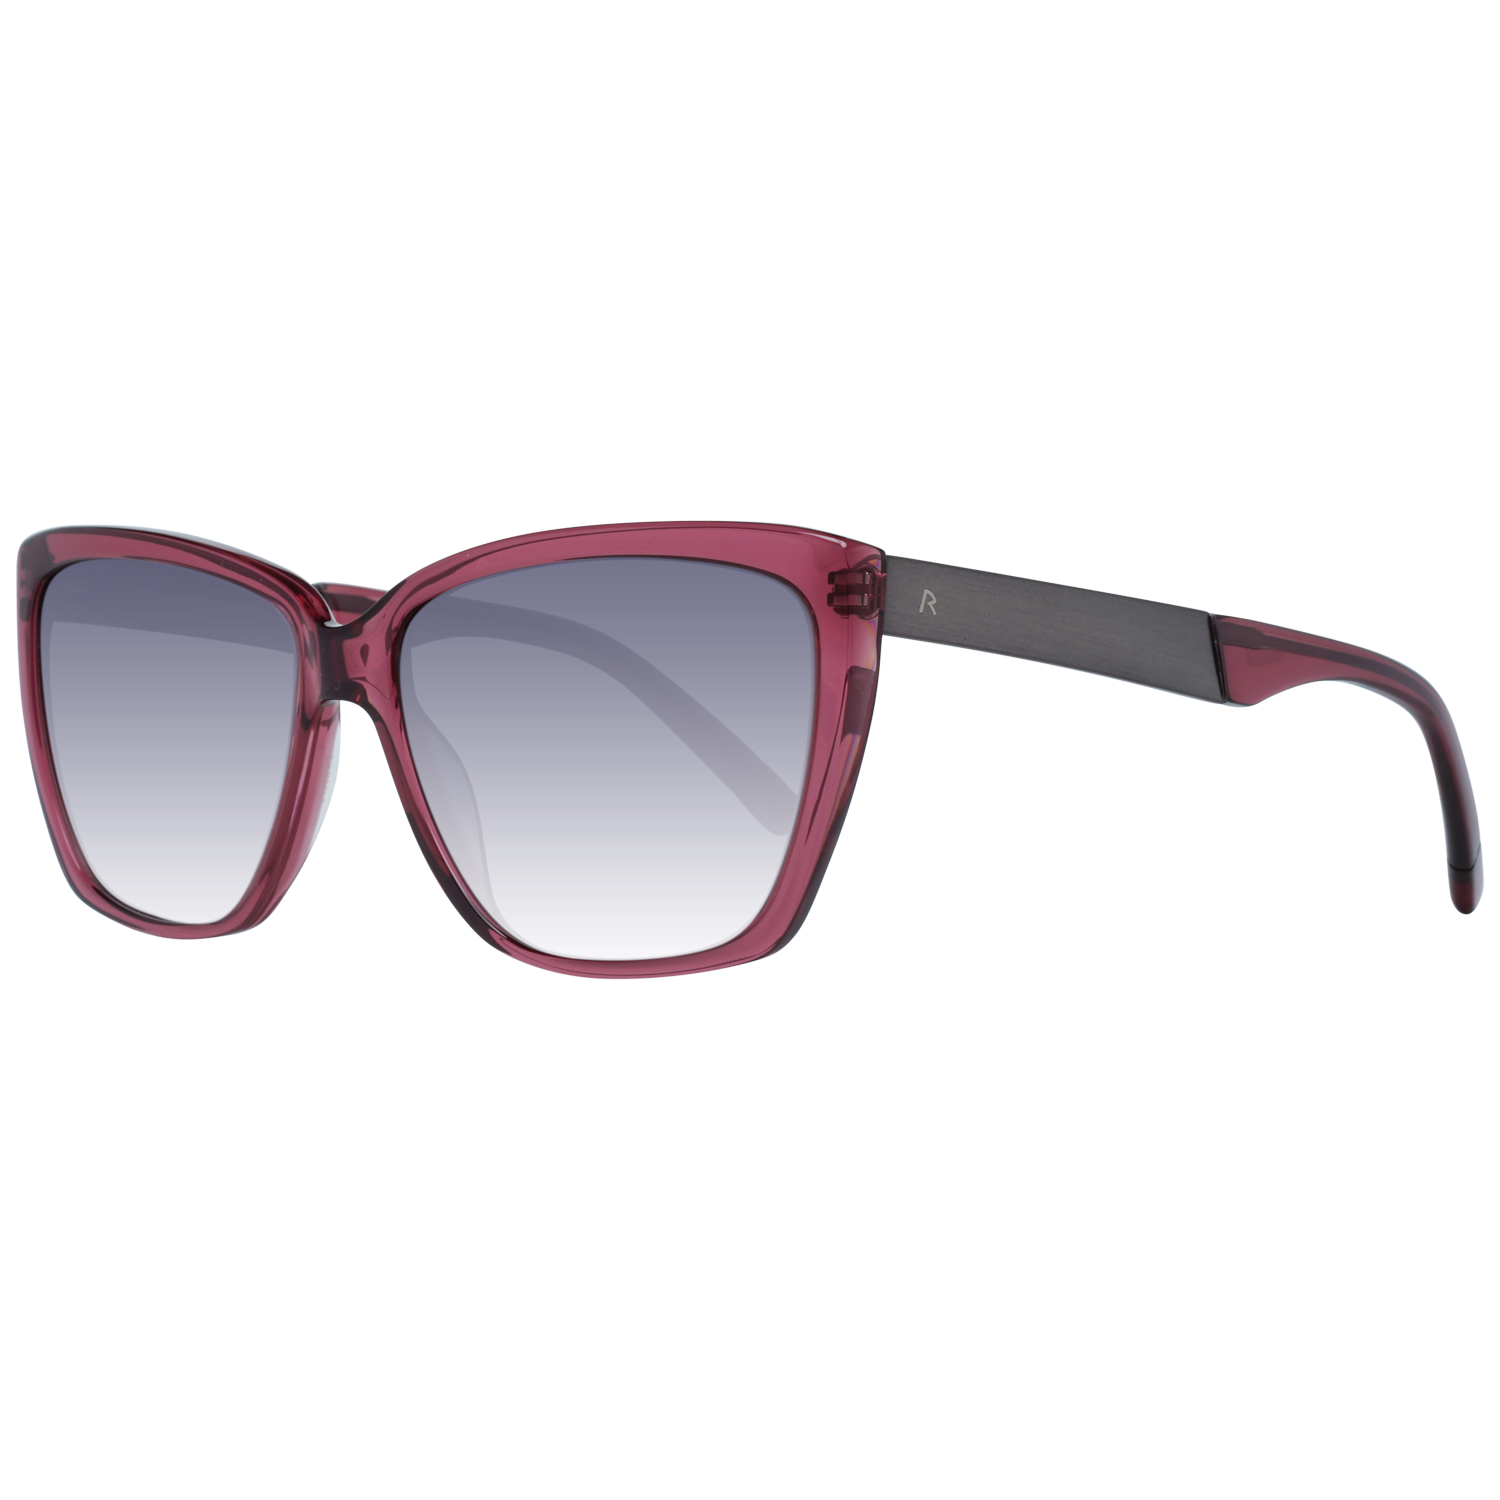 Rodenstock Sunglasses R3301 D 56 Red